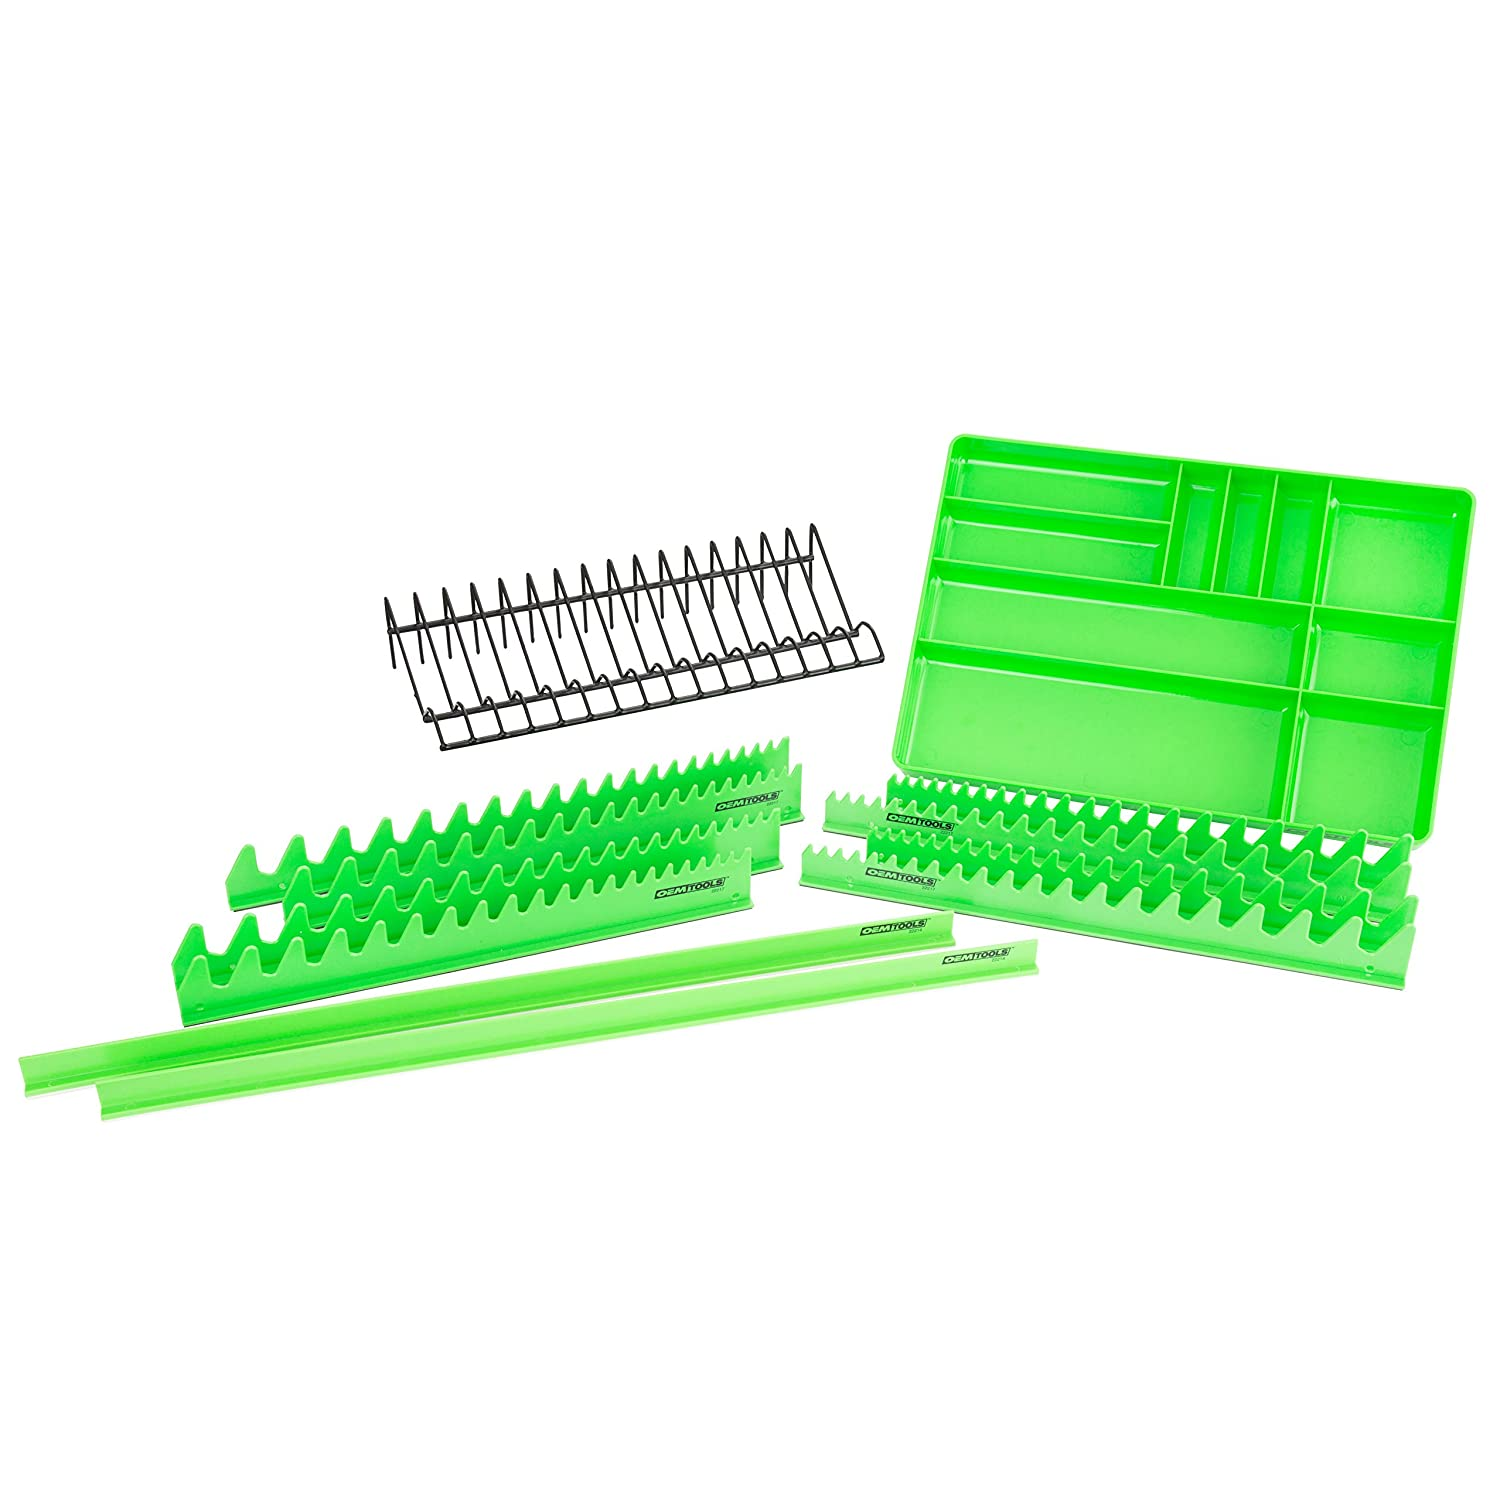 OEMTOOLS 22189 12 Piece Tool Organizer Set – For Organizing and Storing Wrenches, Pliers, Tools and Parts – Includes Organizing Tray and Drawer Dividers